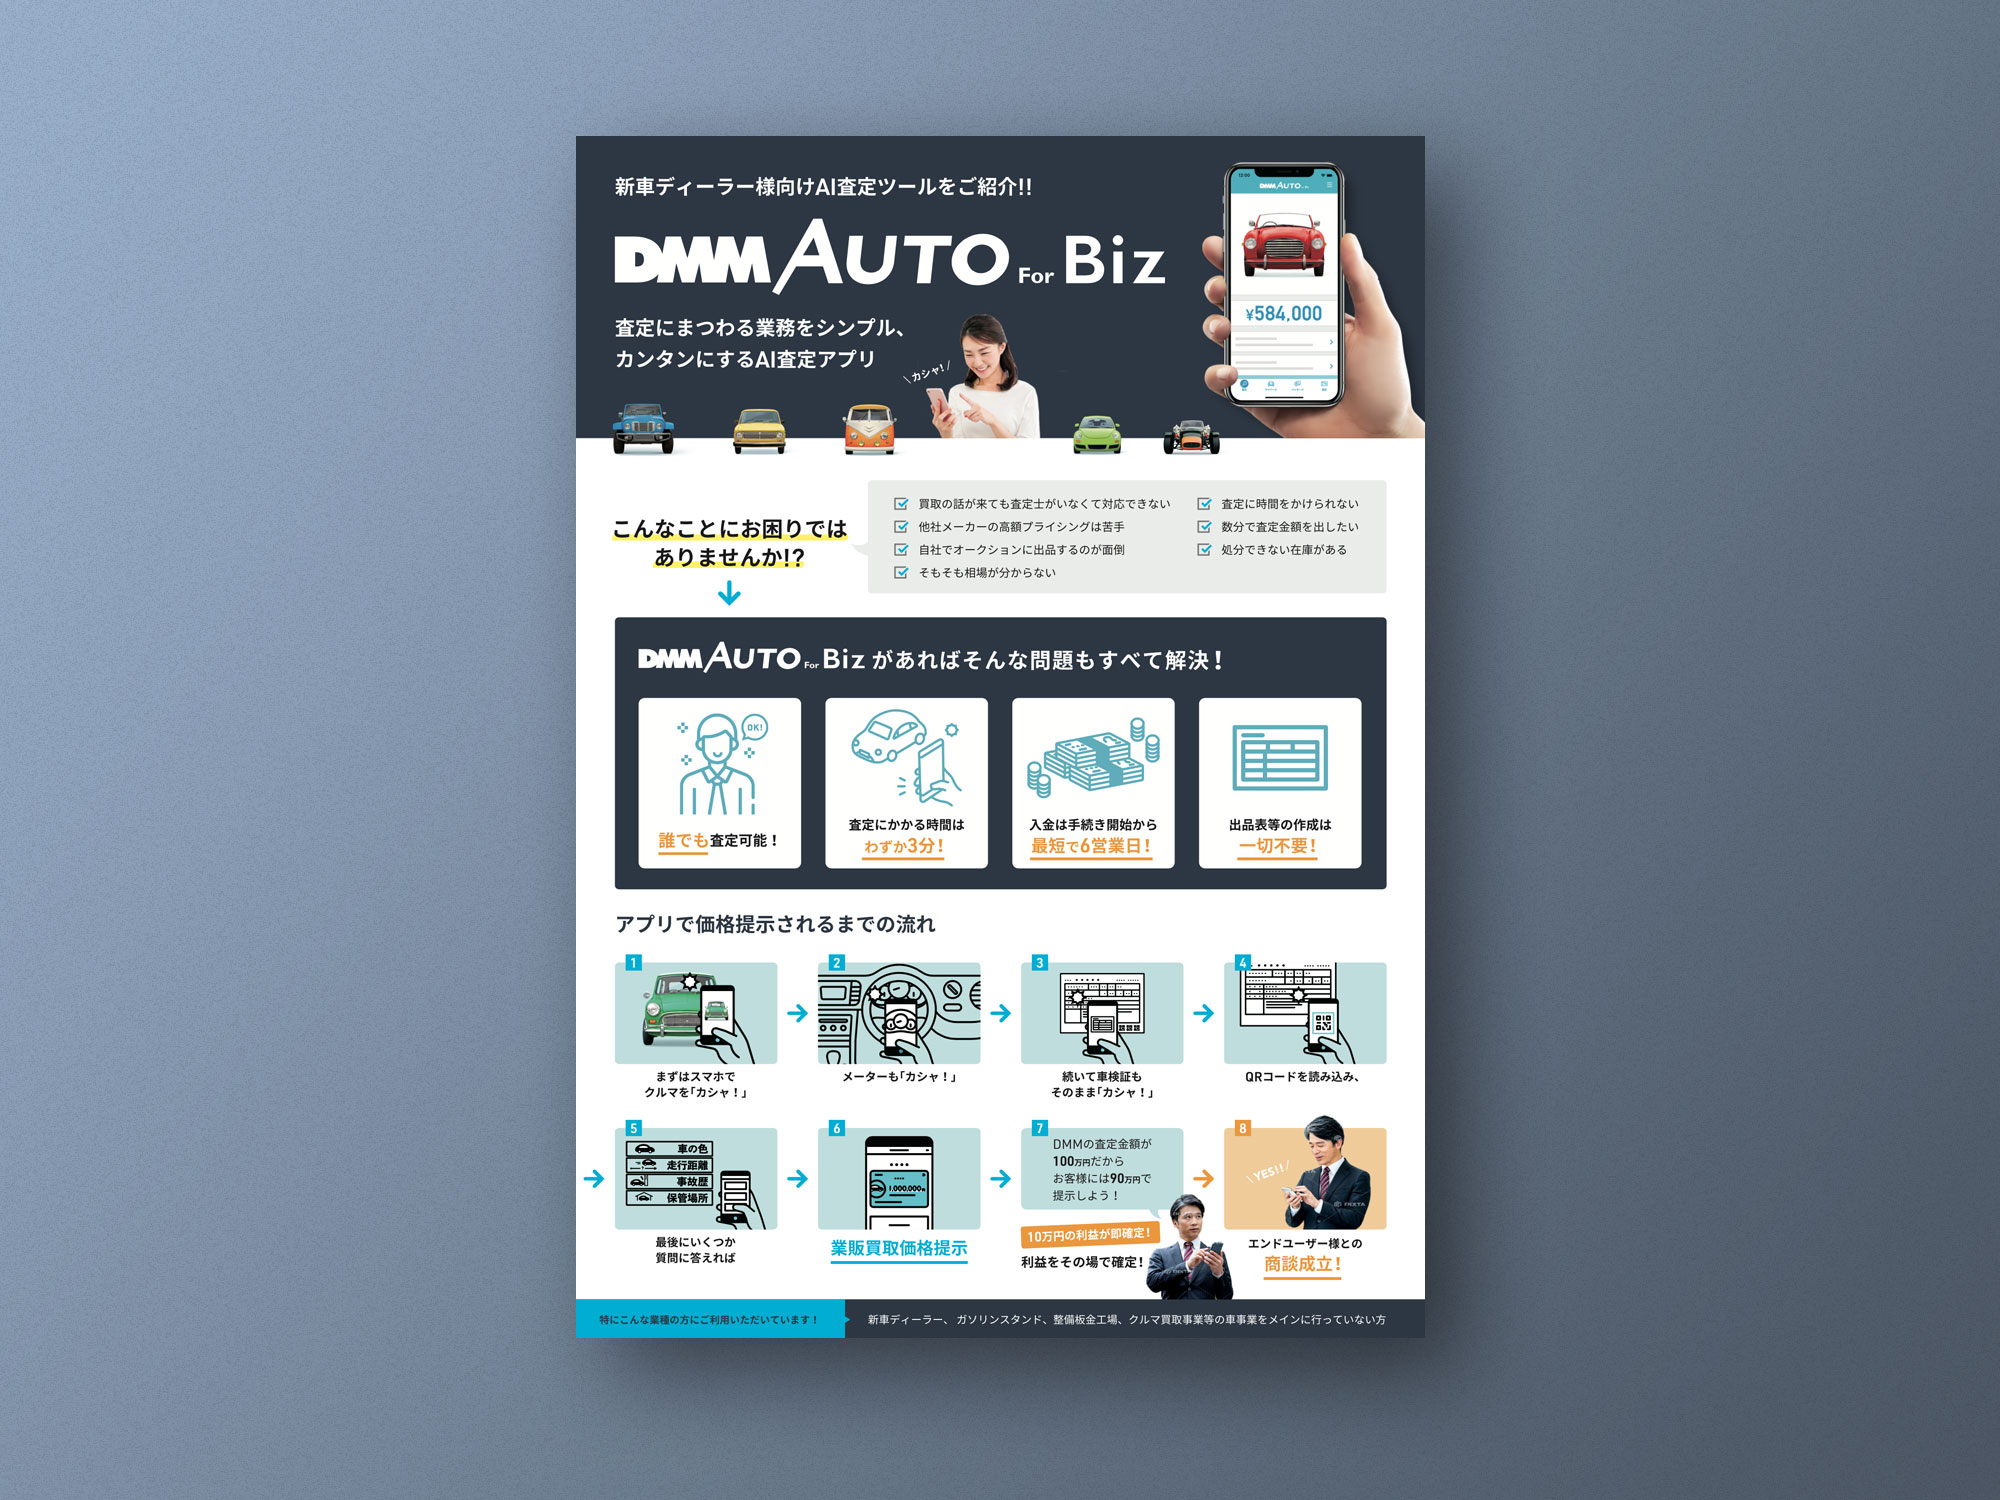 DMM AUTO for Biz Flyer Design